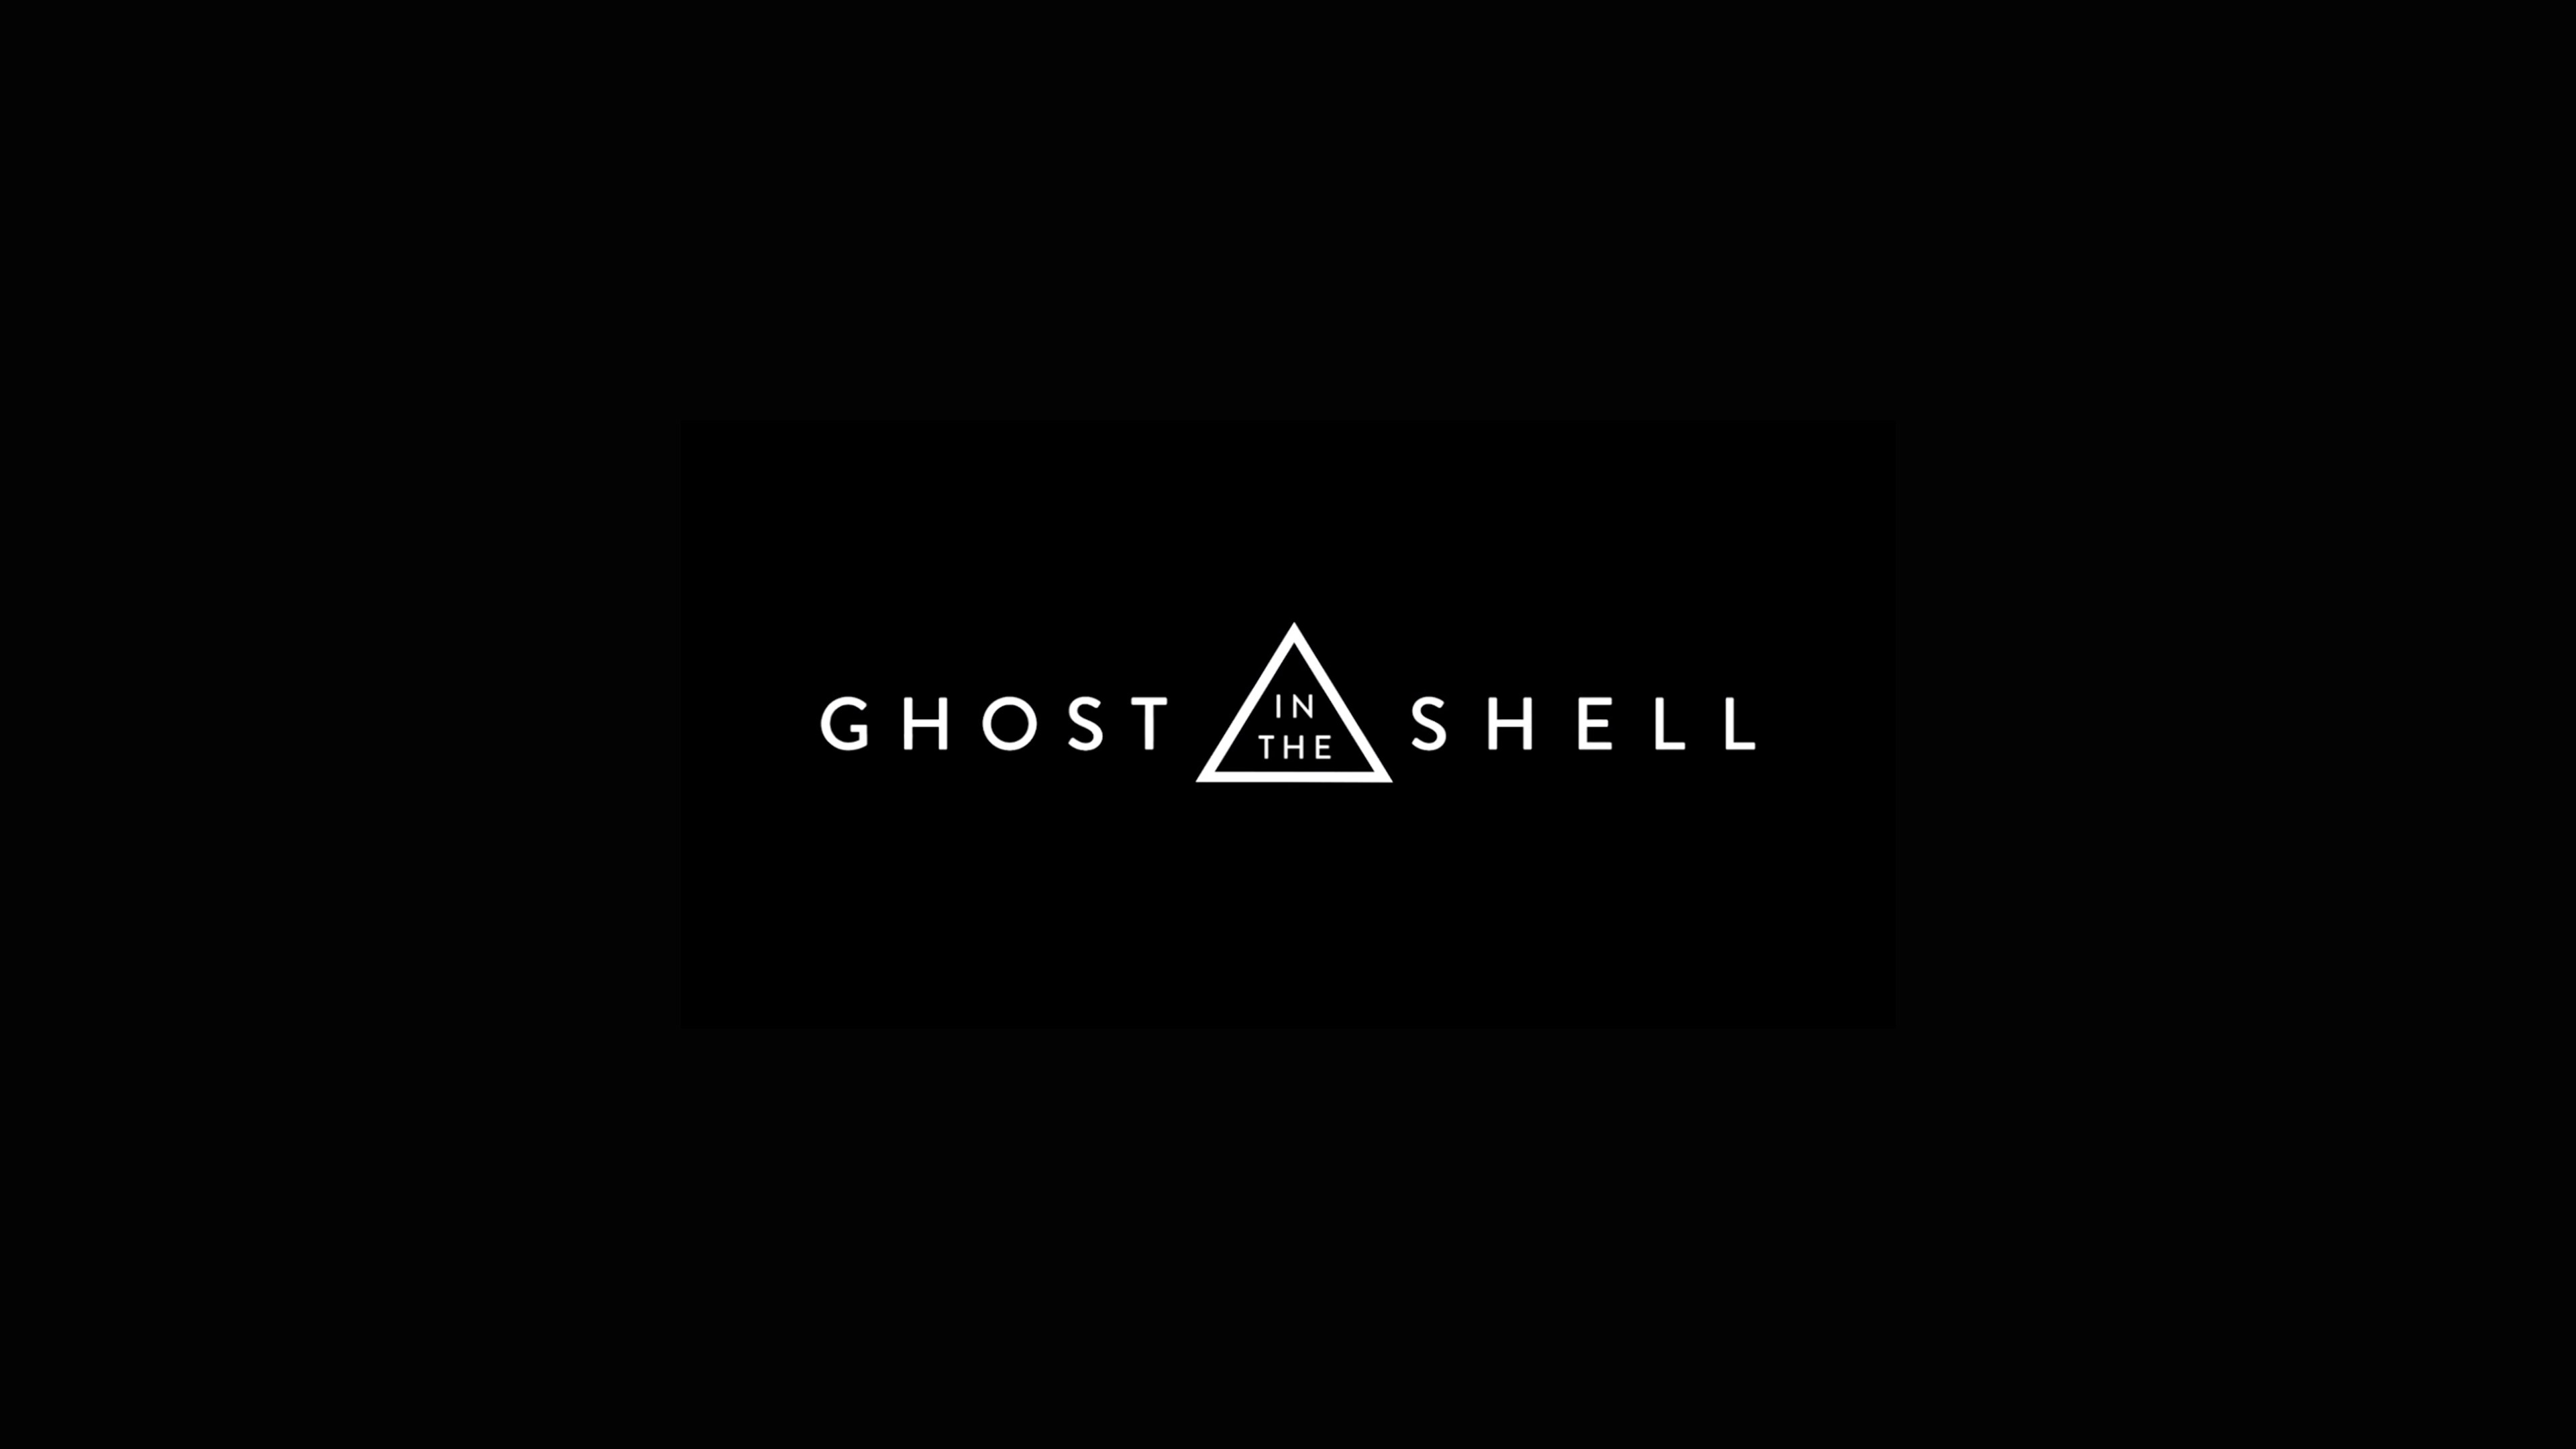 Wallpaper 4k Ghost In The Shell Movie Logo 2017 Movies Wallpapers